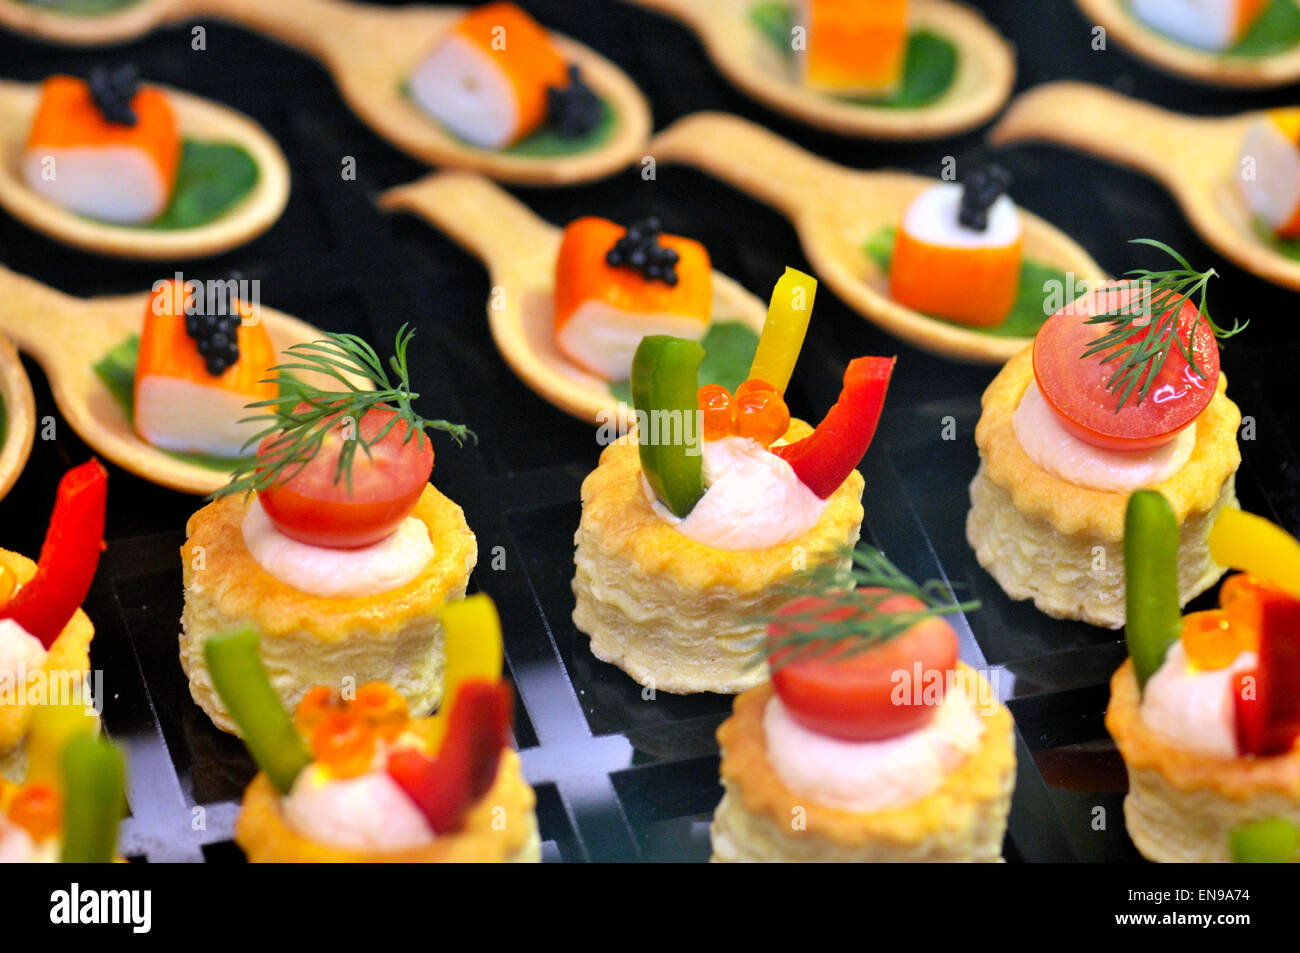 Appetizers, Vol-au-vent in a Food Exhibition Stock Photo